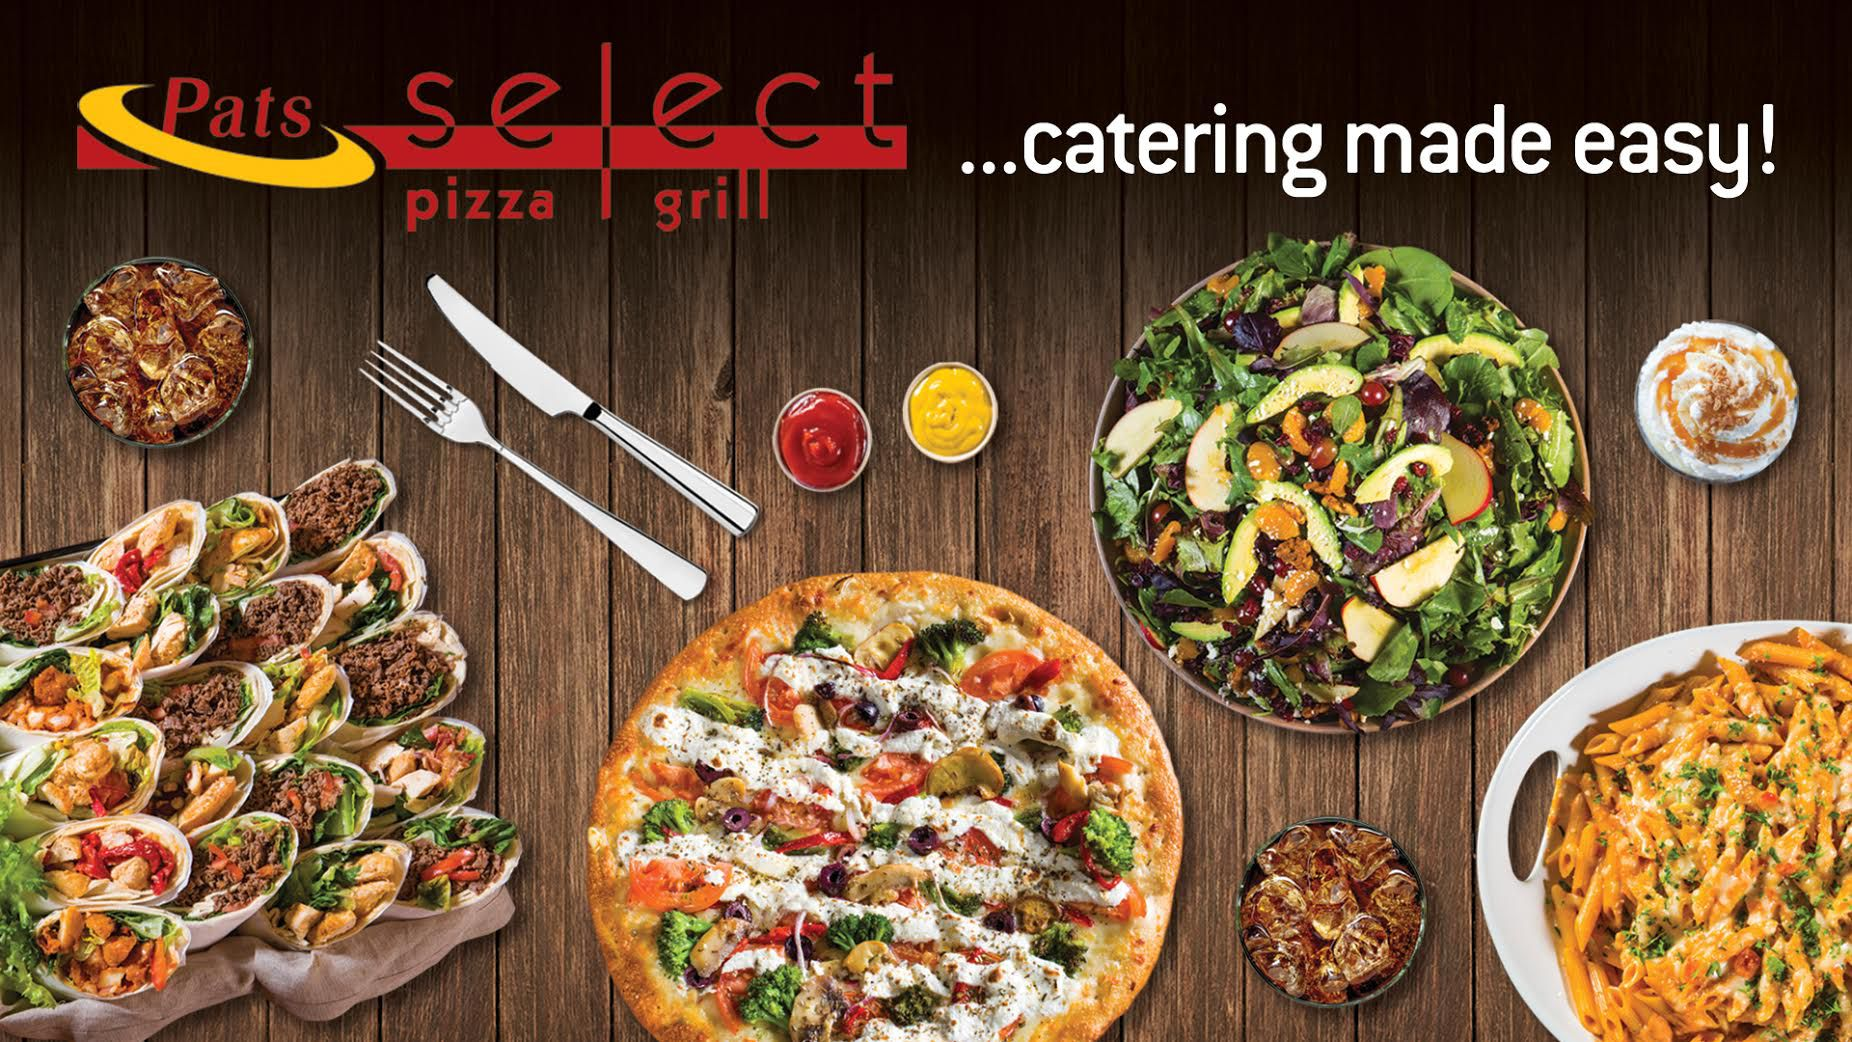 pats select pizza grill coupons